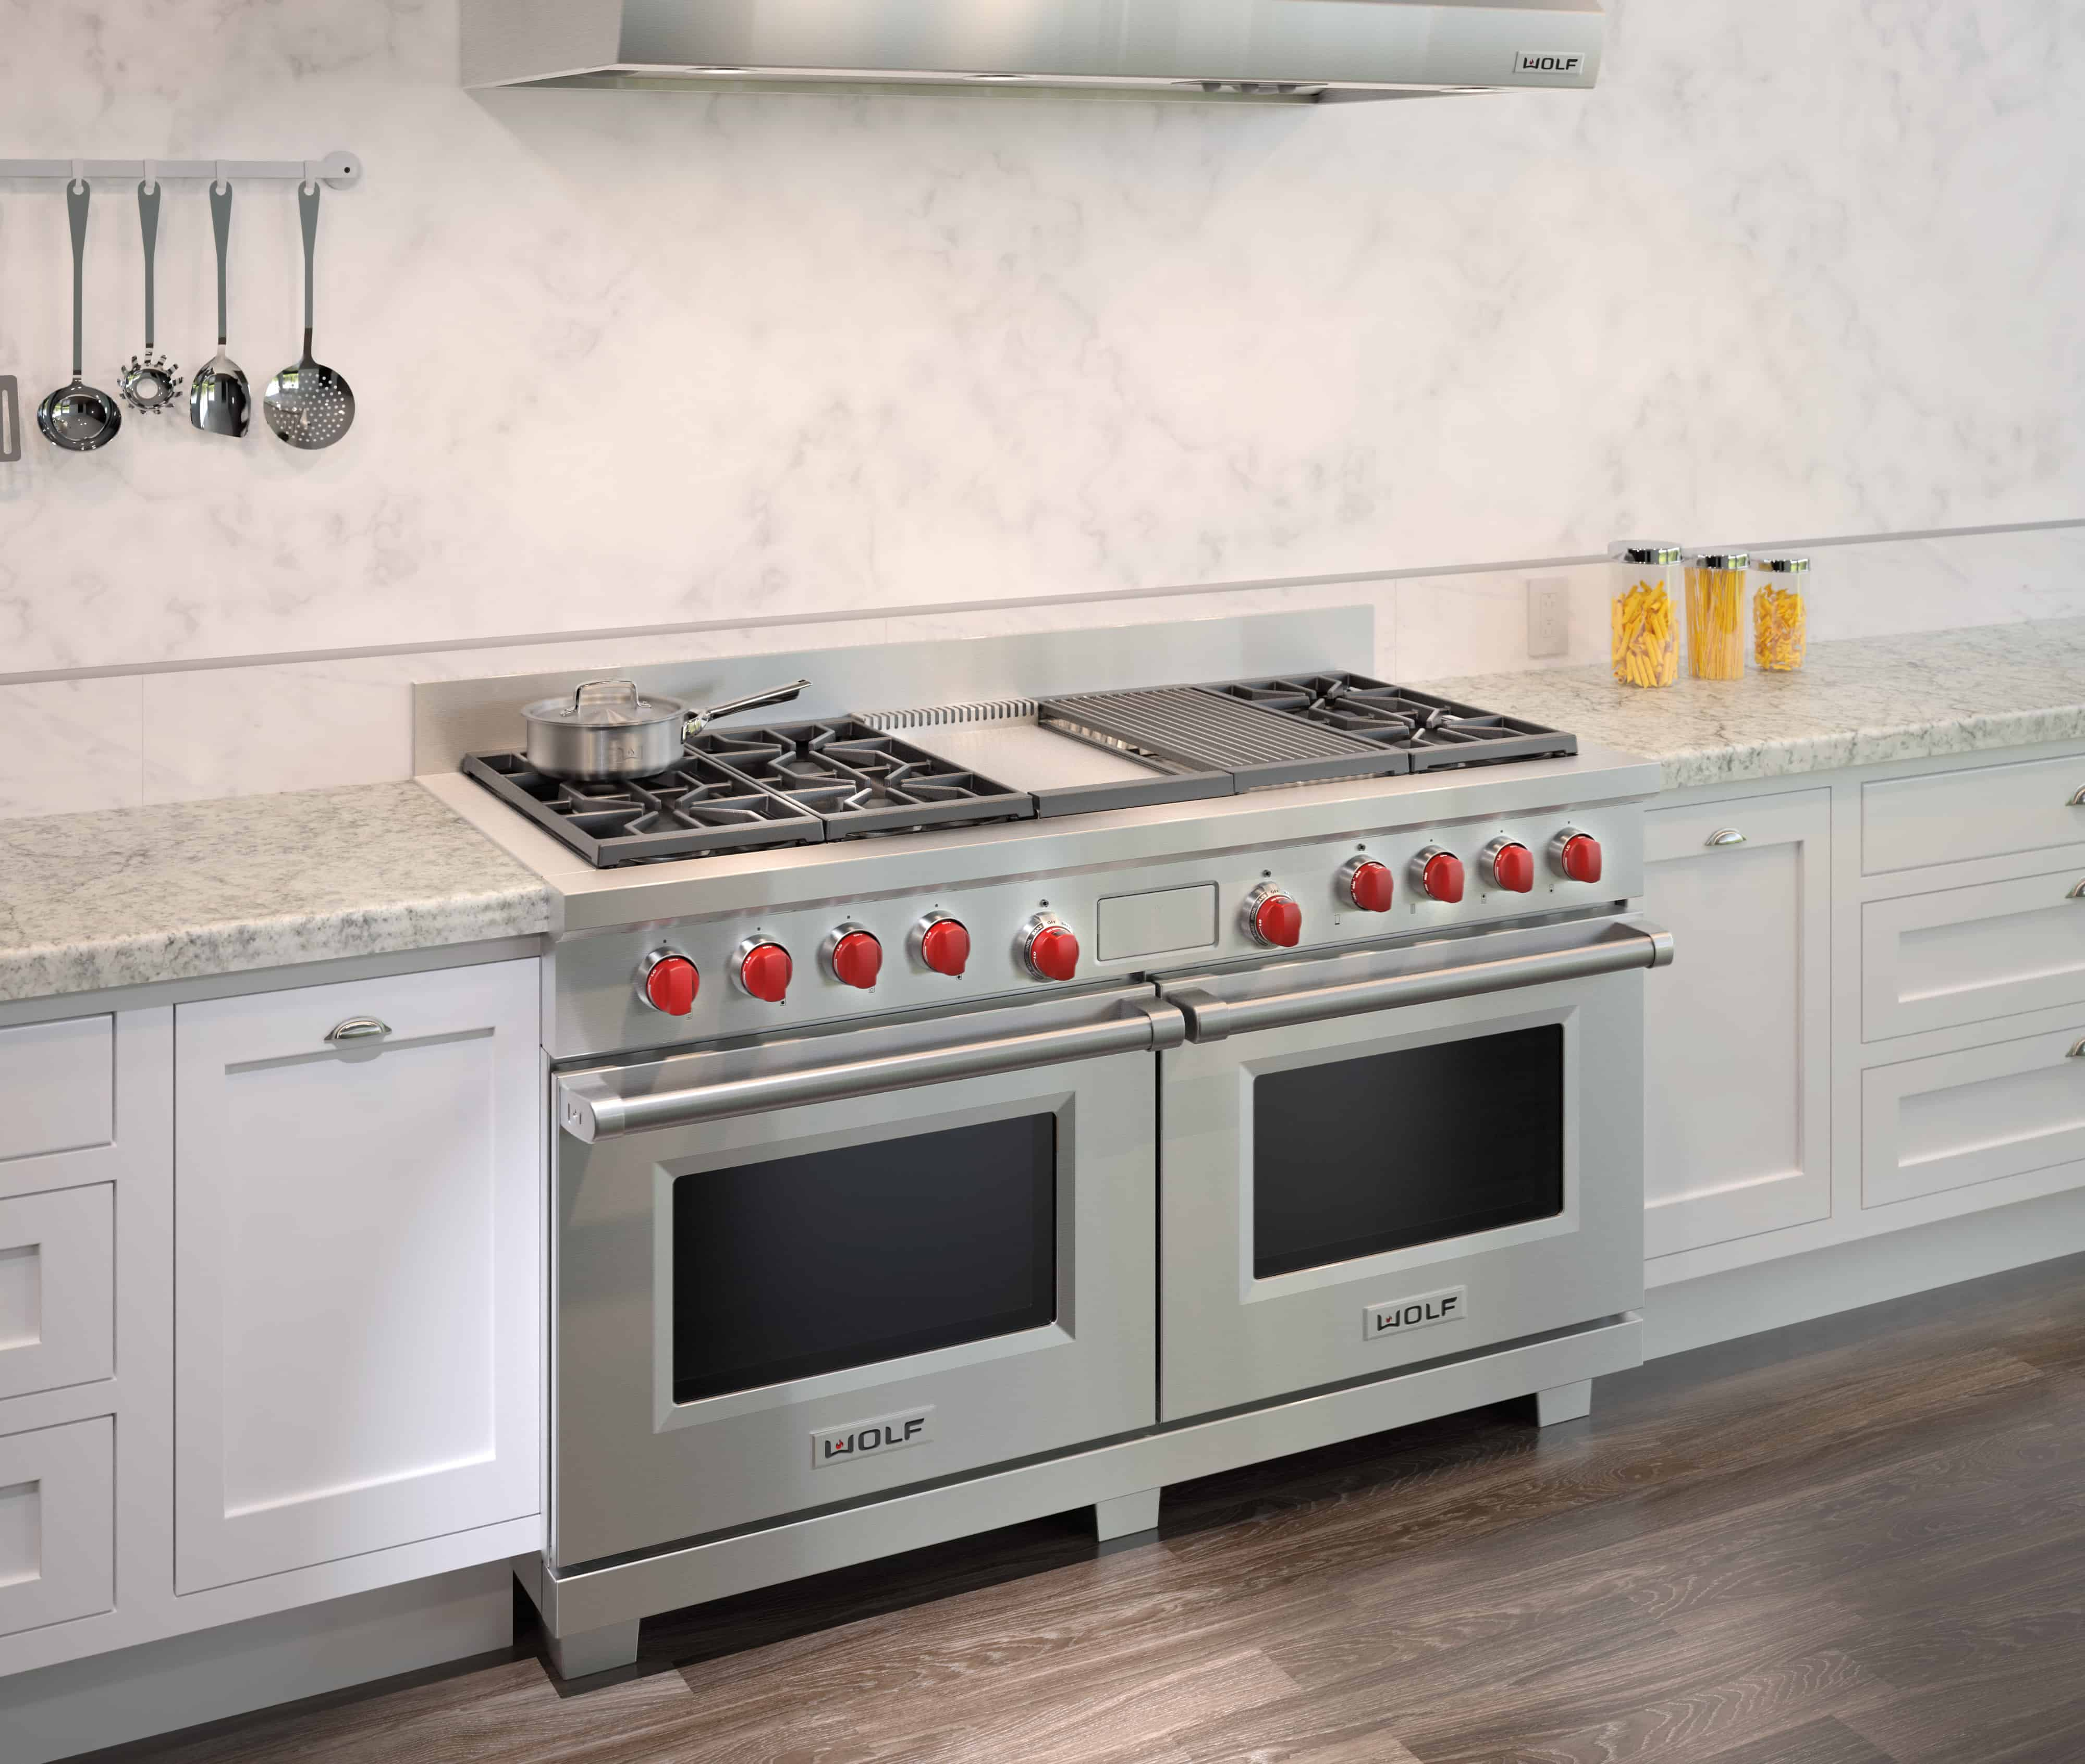 built gea dispatcher countertop in gas appliances ge appliance product name requesttype range image cooktop specs